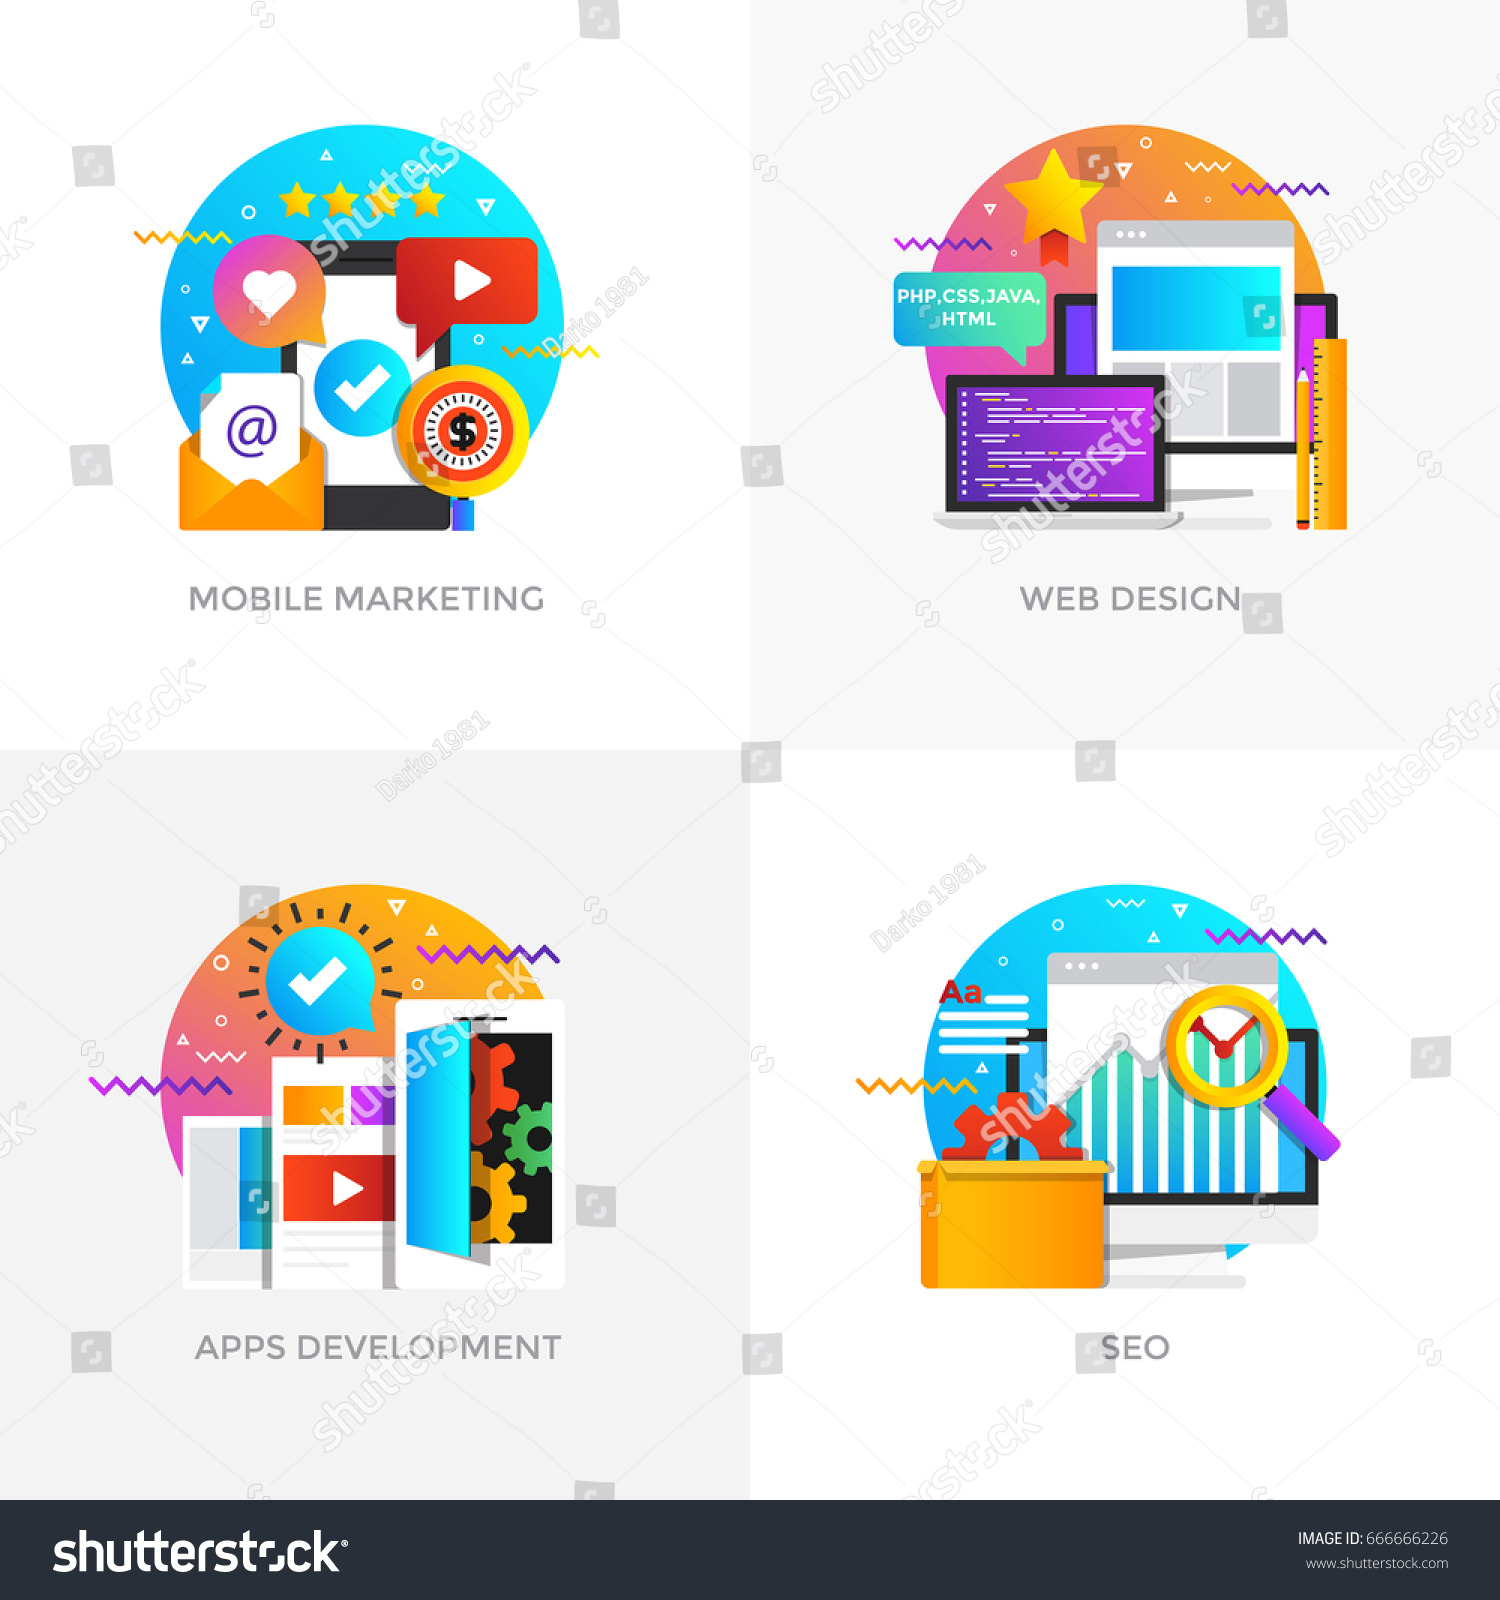 Modern Flat Color Designed Concepts Icons For Mobile Marketing Web Design Apps Development And